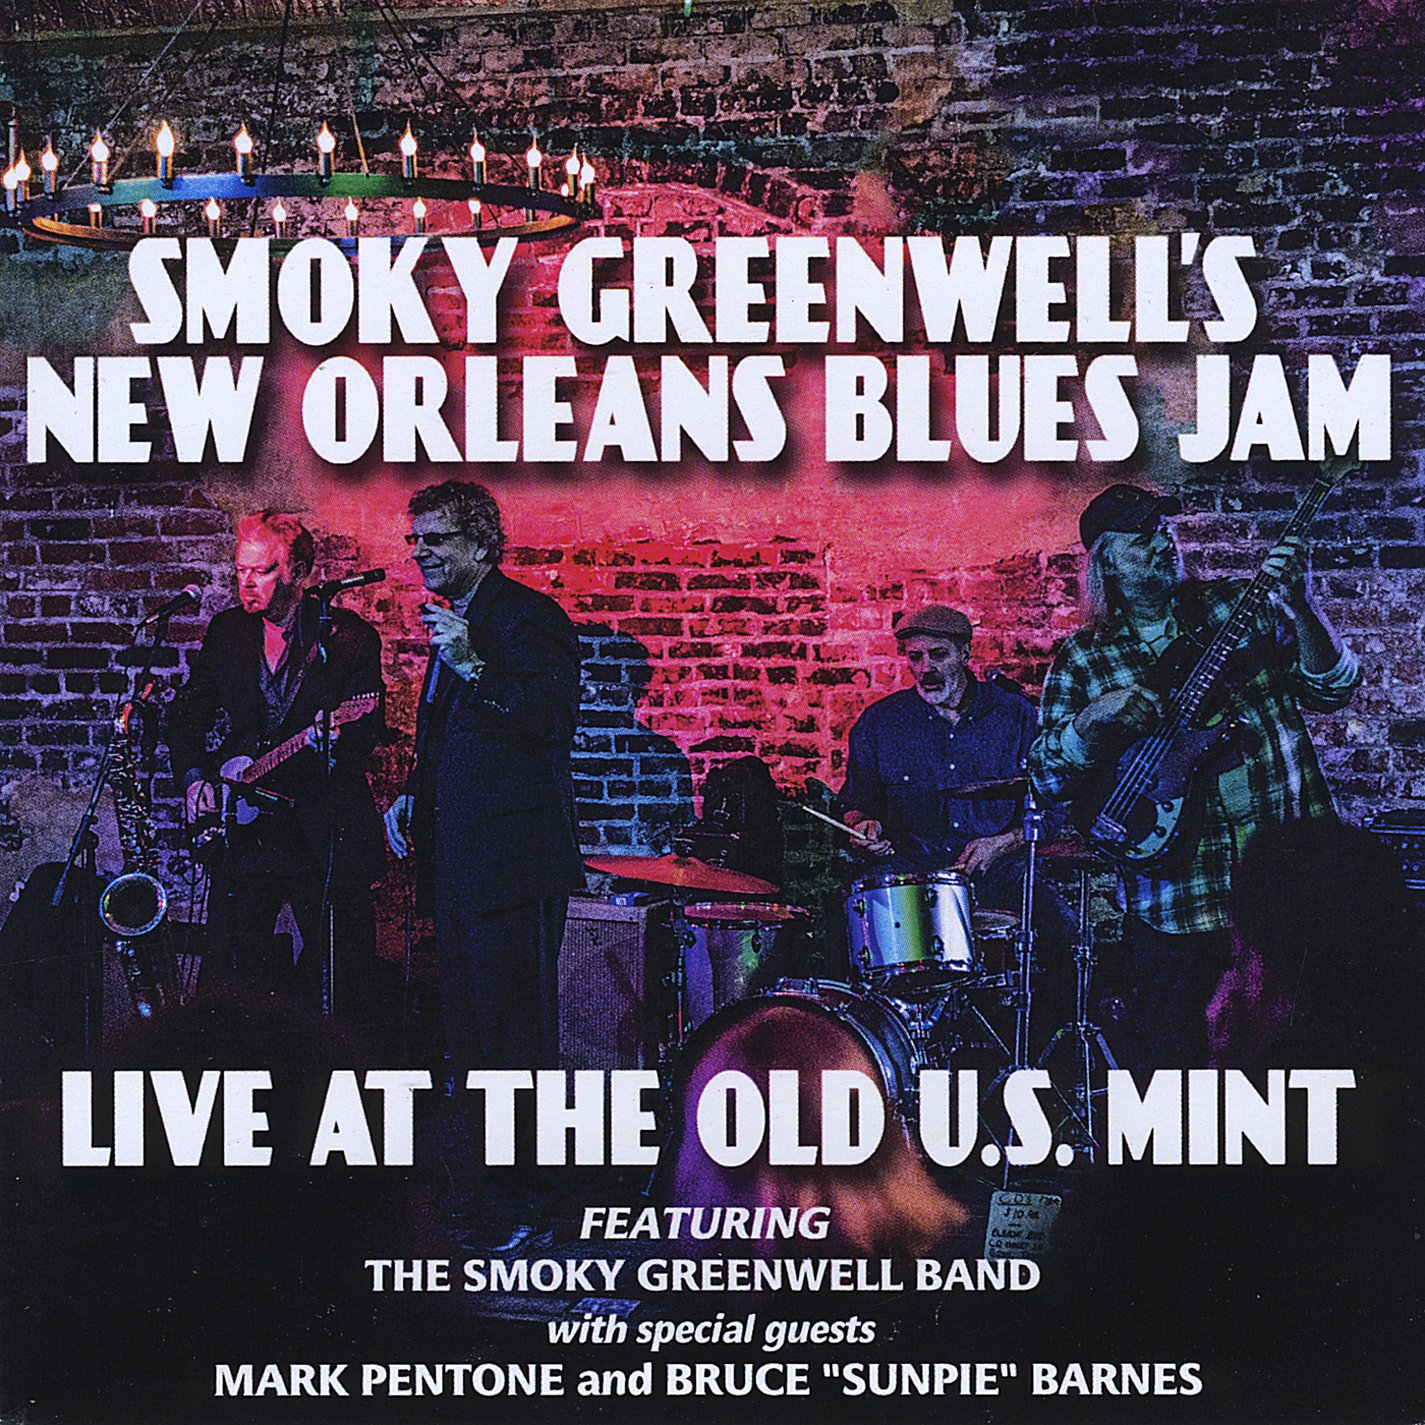 SMOKY GREENWELL'S NEW ORLEANS BLUES JAM Live At The Old US Mint